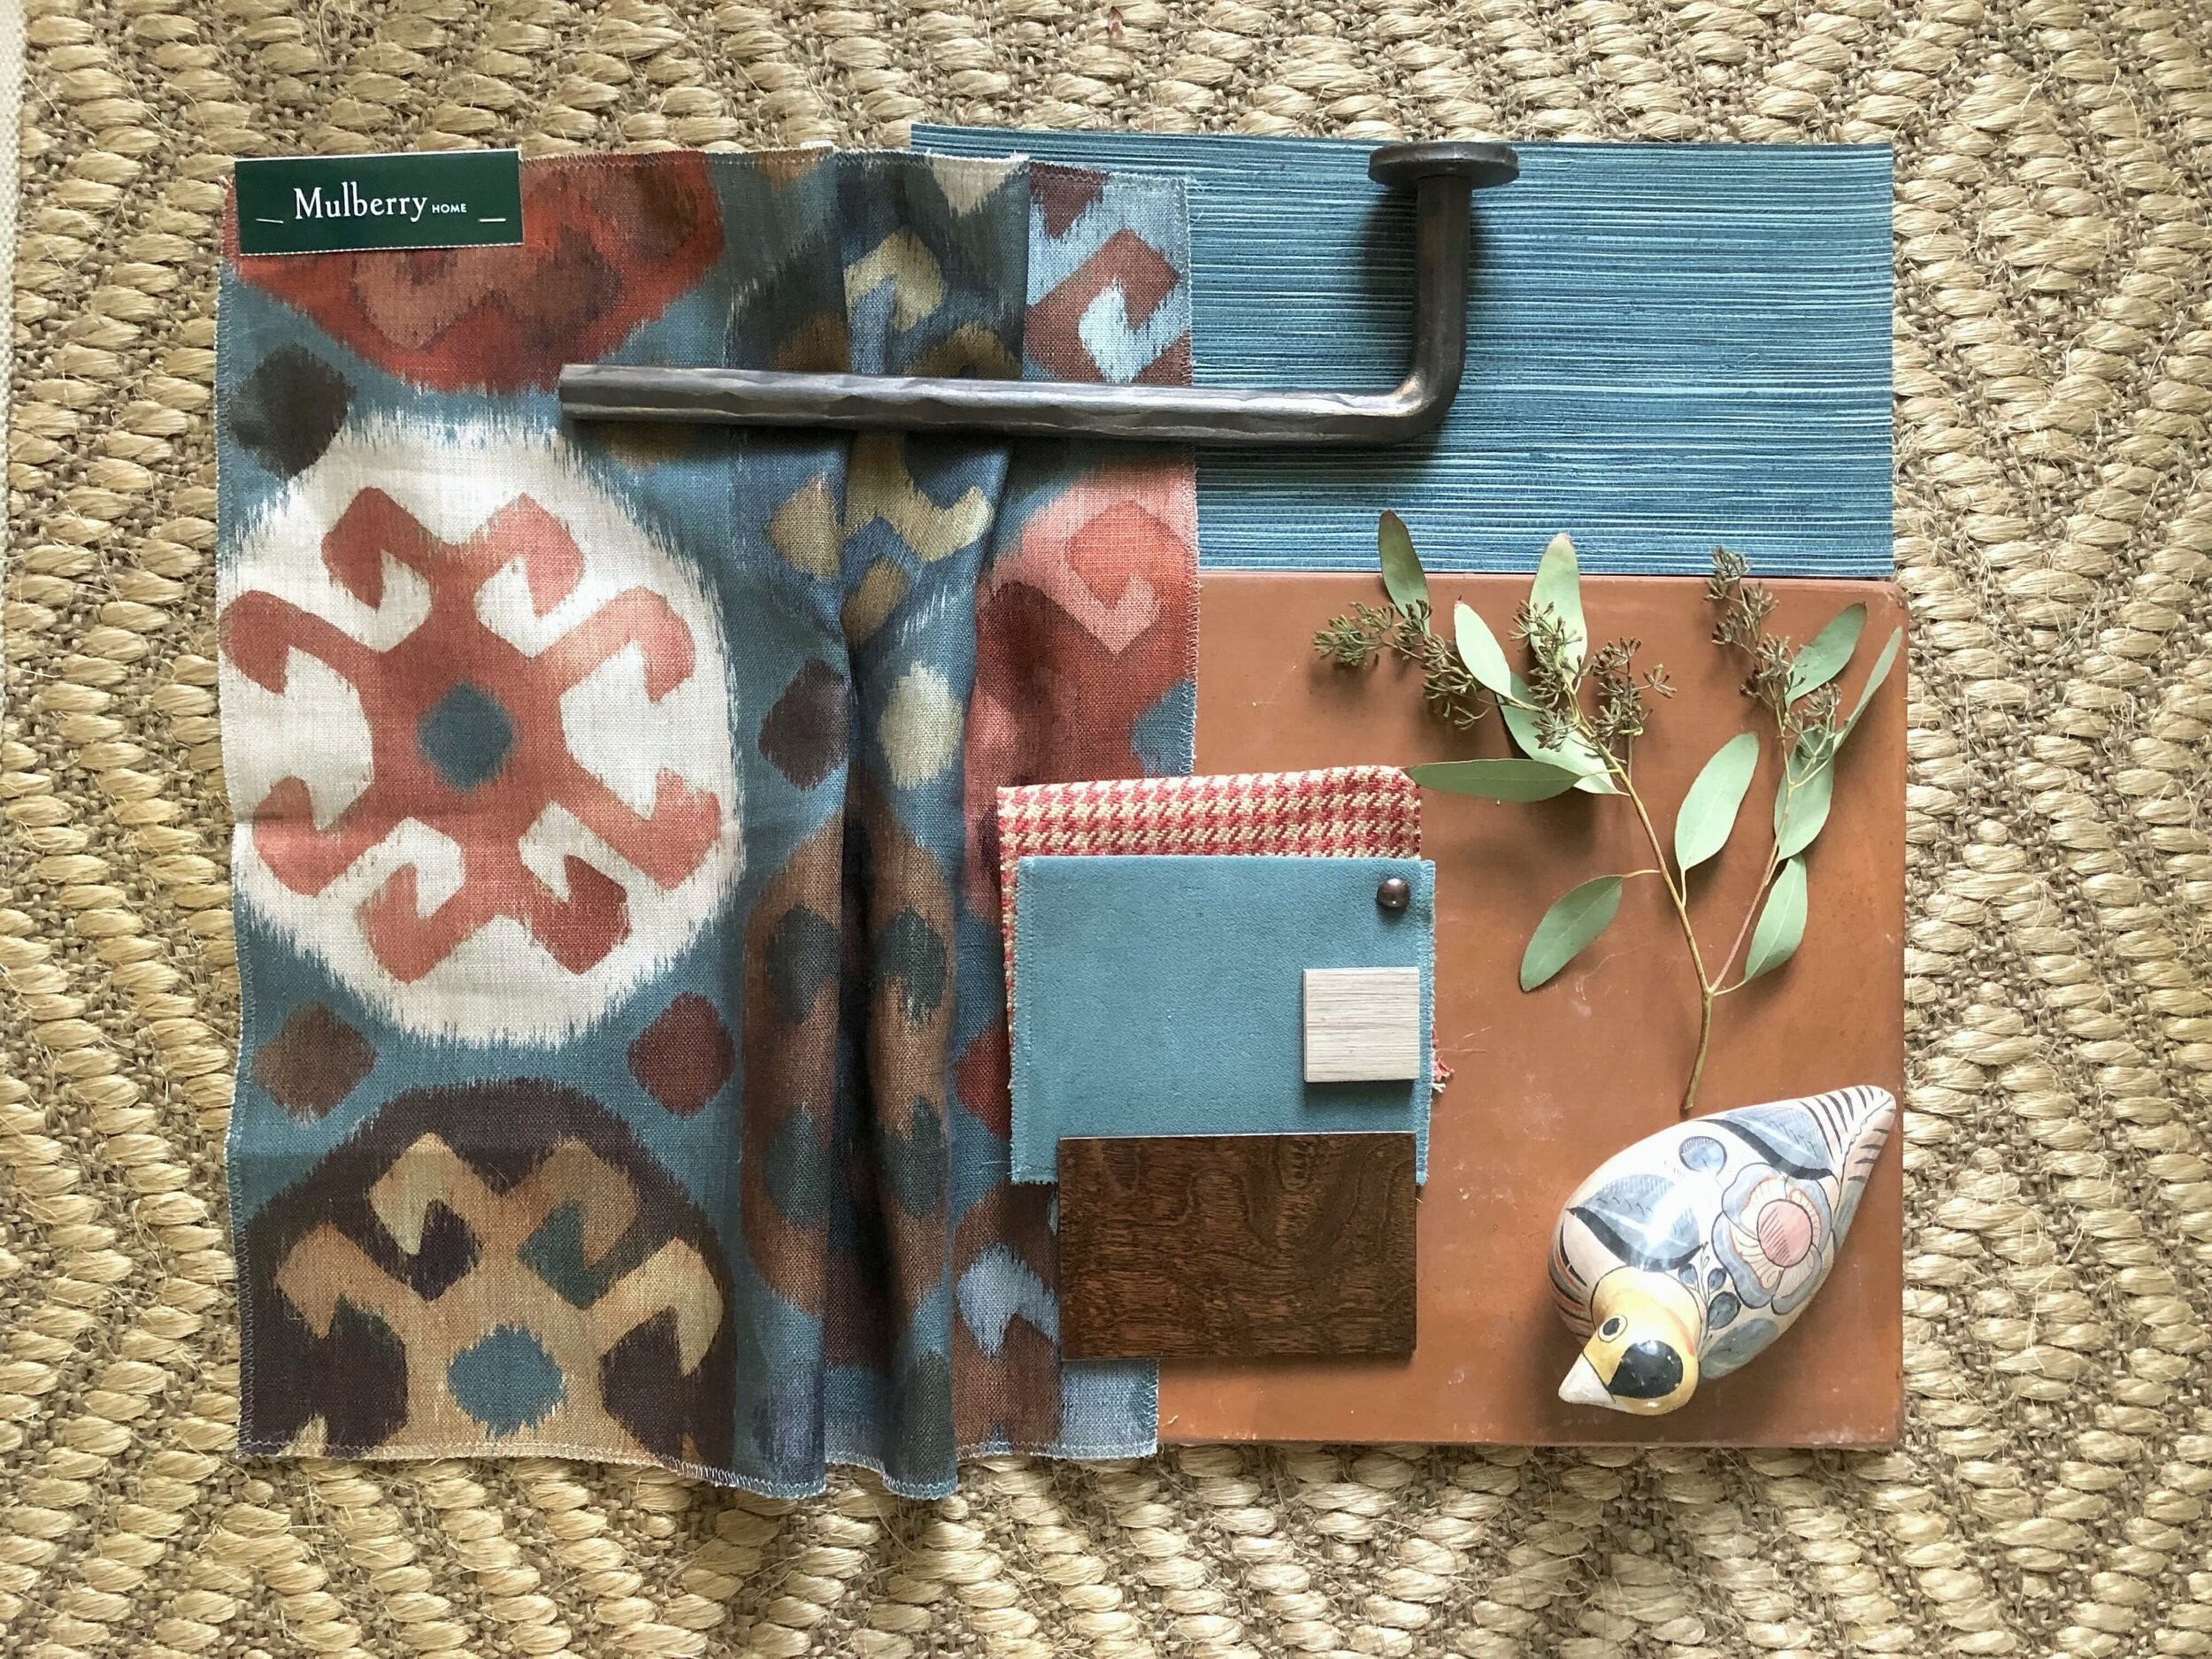 COLOR PALETTE CRUSH - Terracotta and turquoise color palette for home decor and furnishings to warm up your home for fall. #colorpalette #colorinspiration